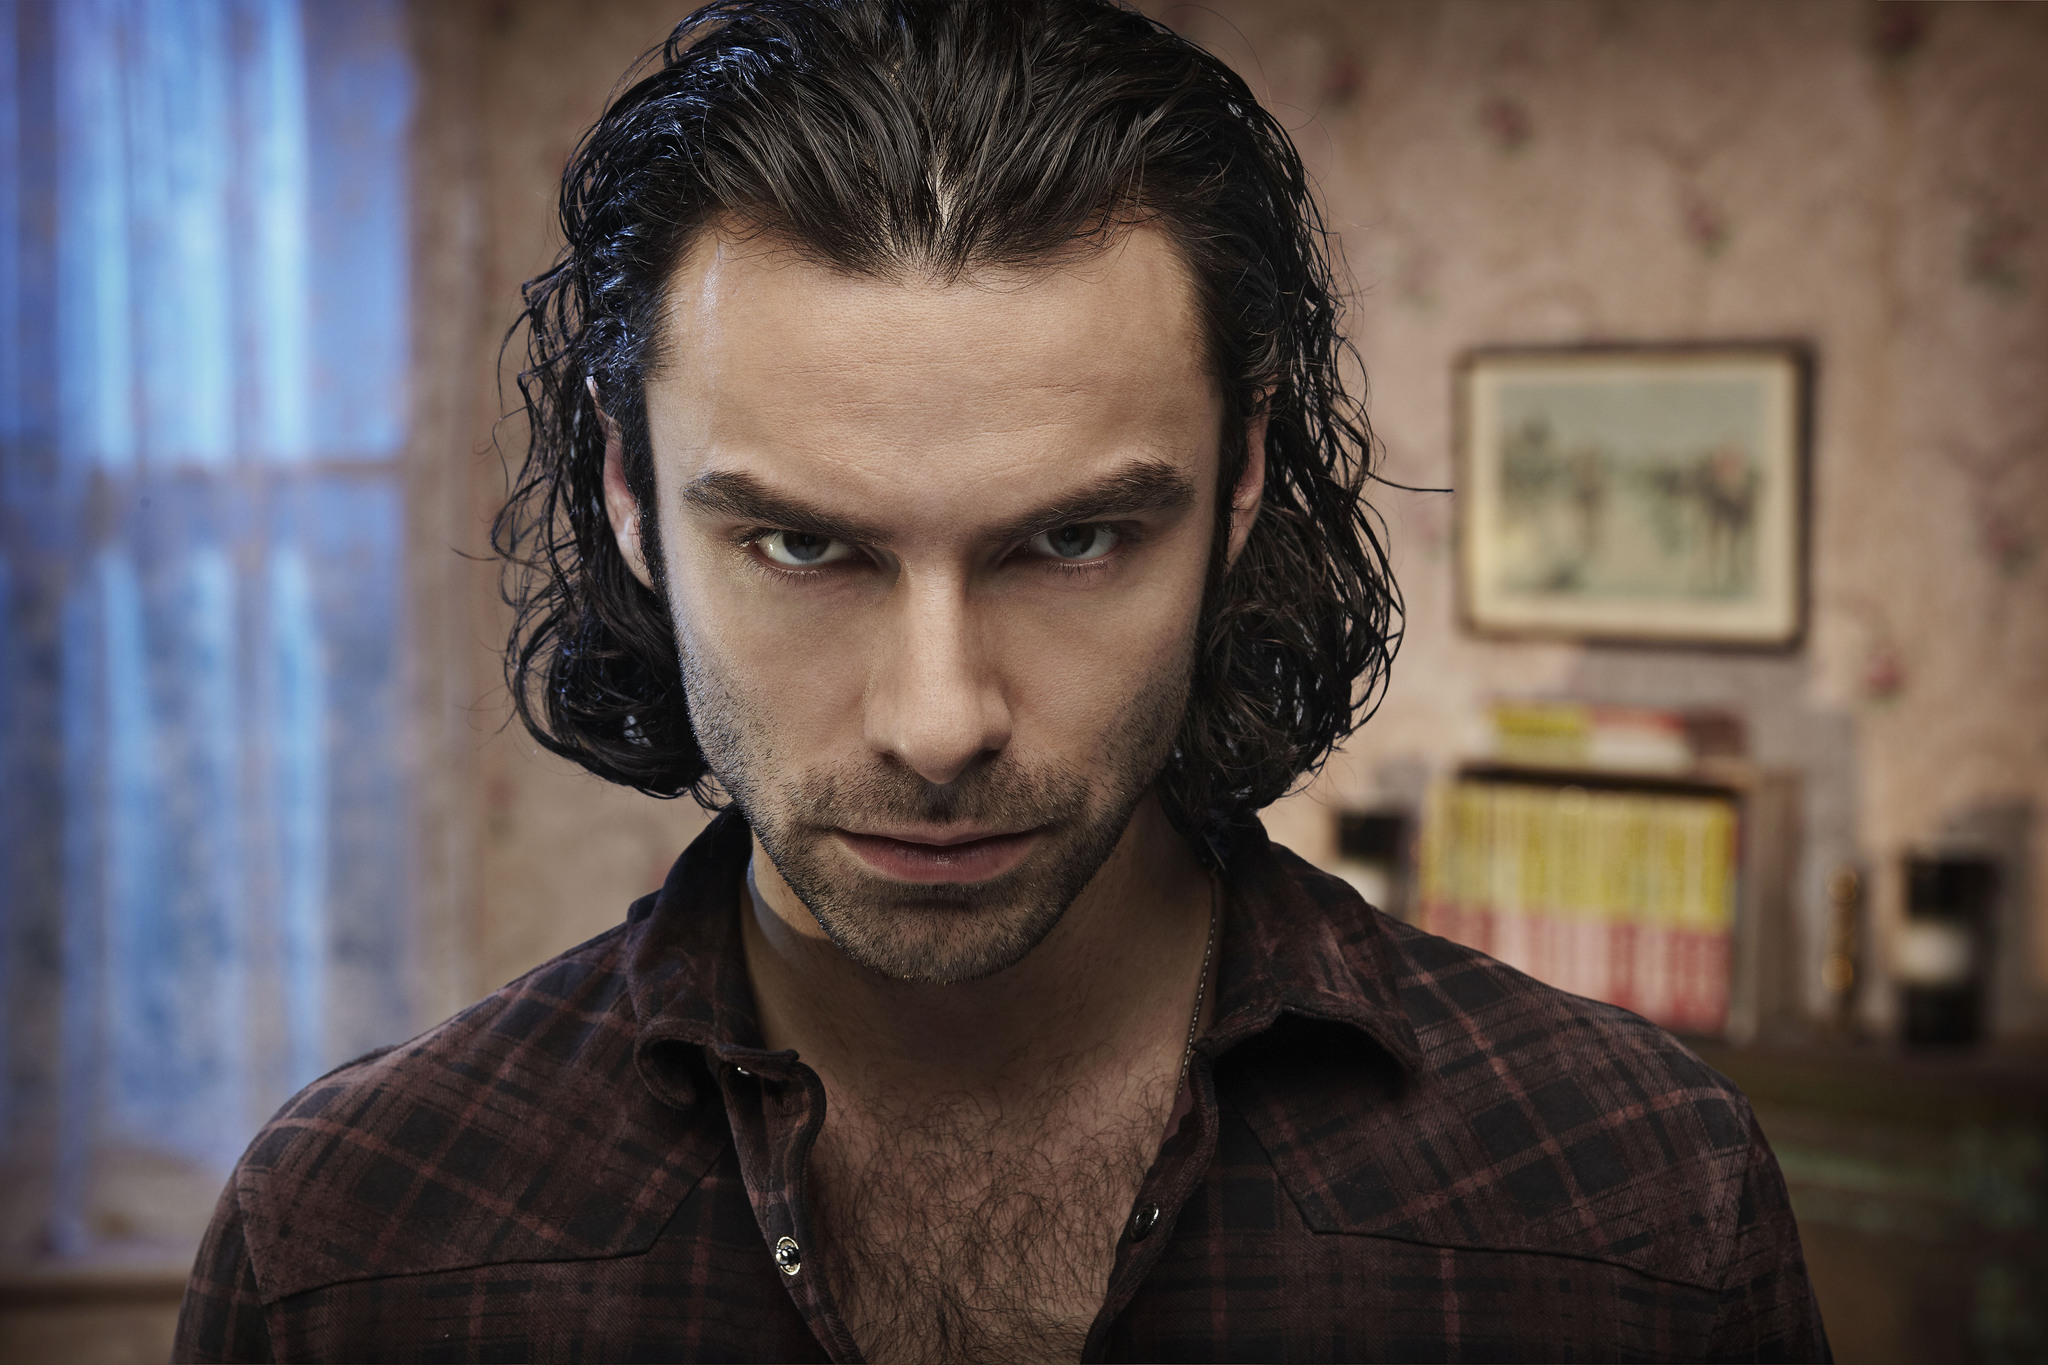 Still of Aidan Turner in Being Human (2008) photo #502409